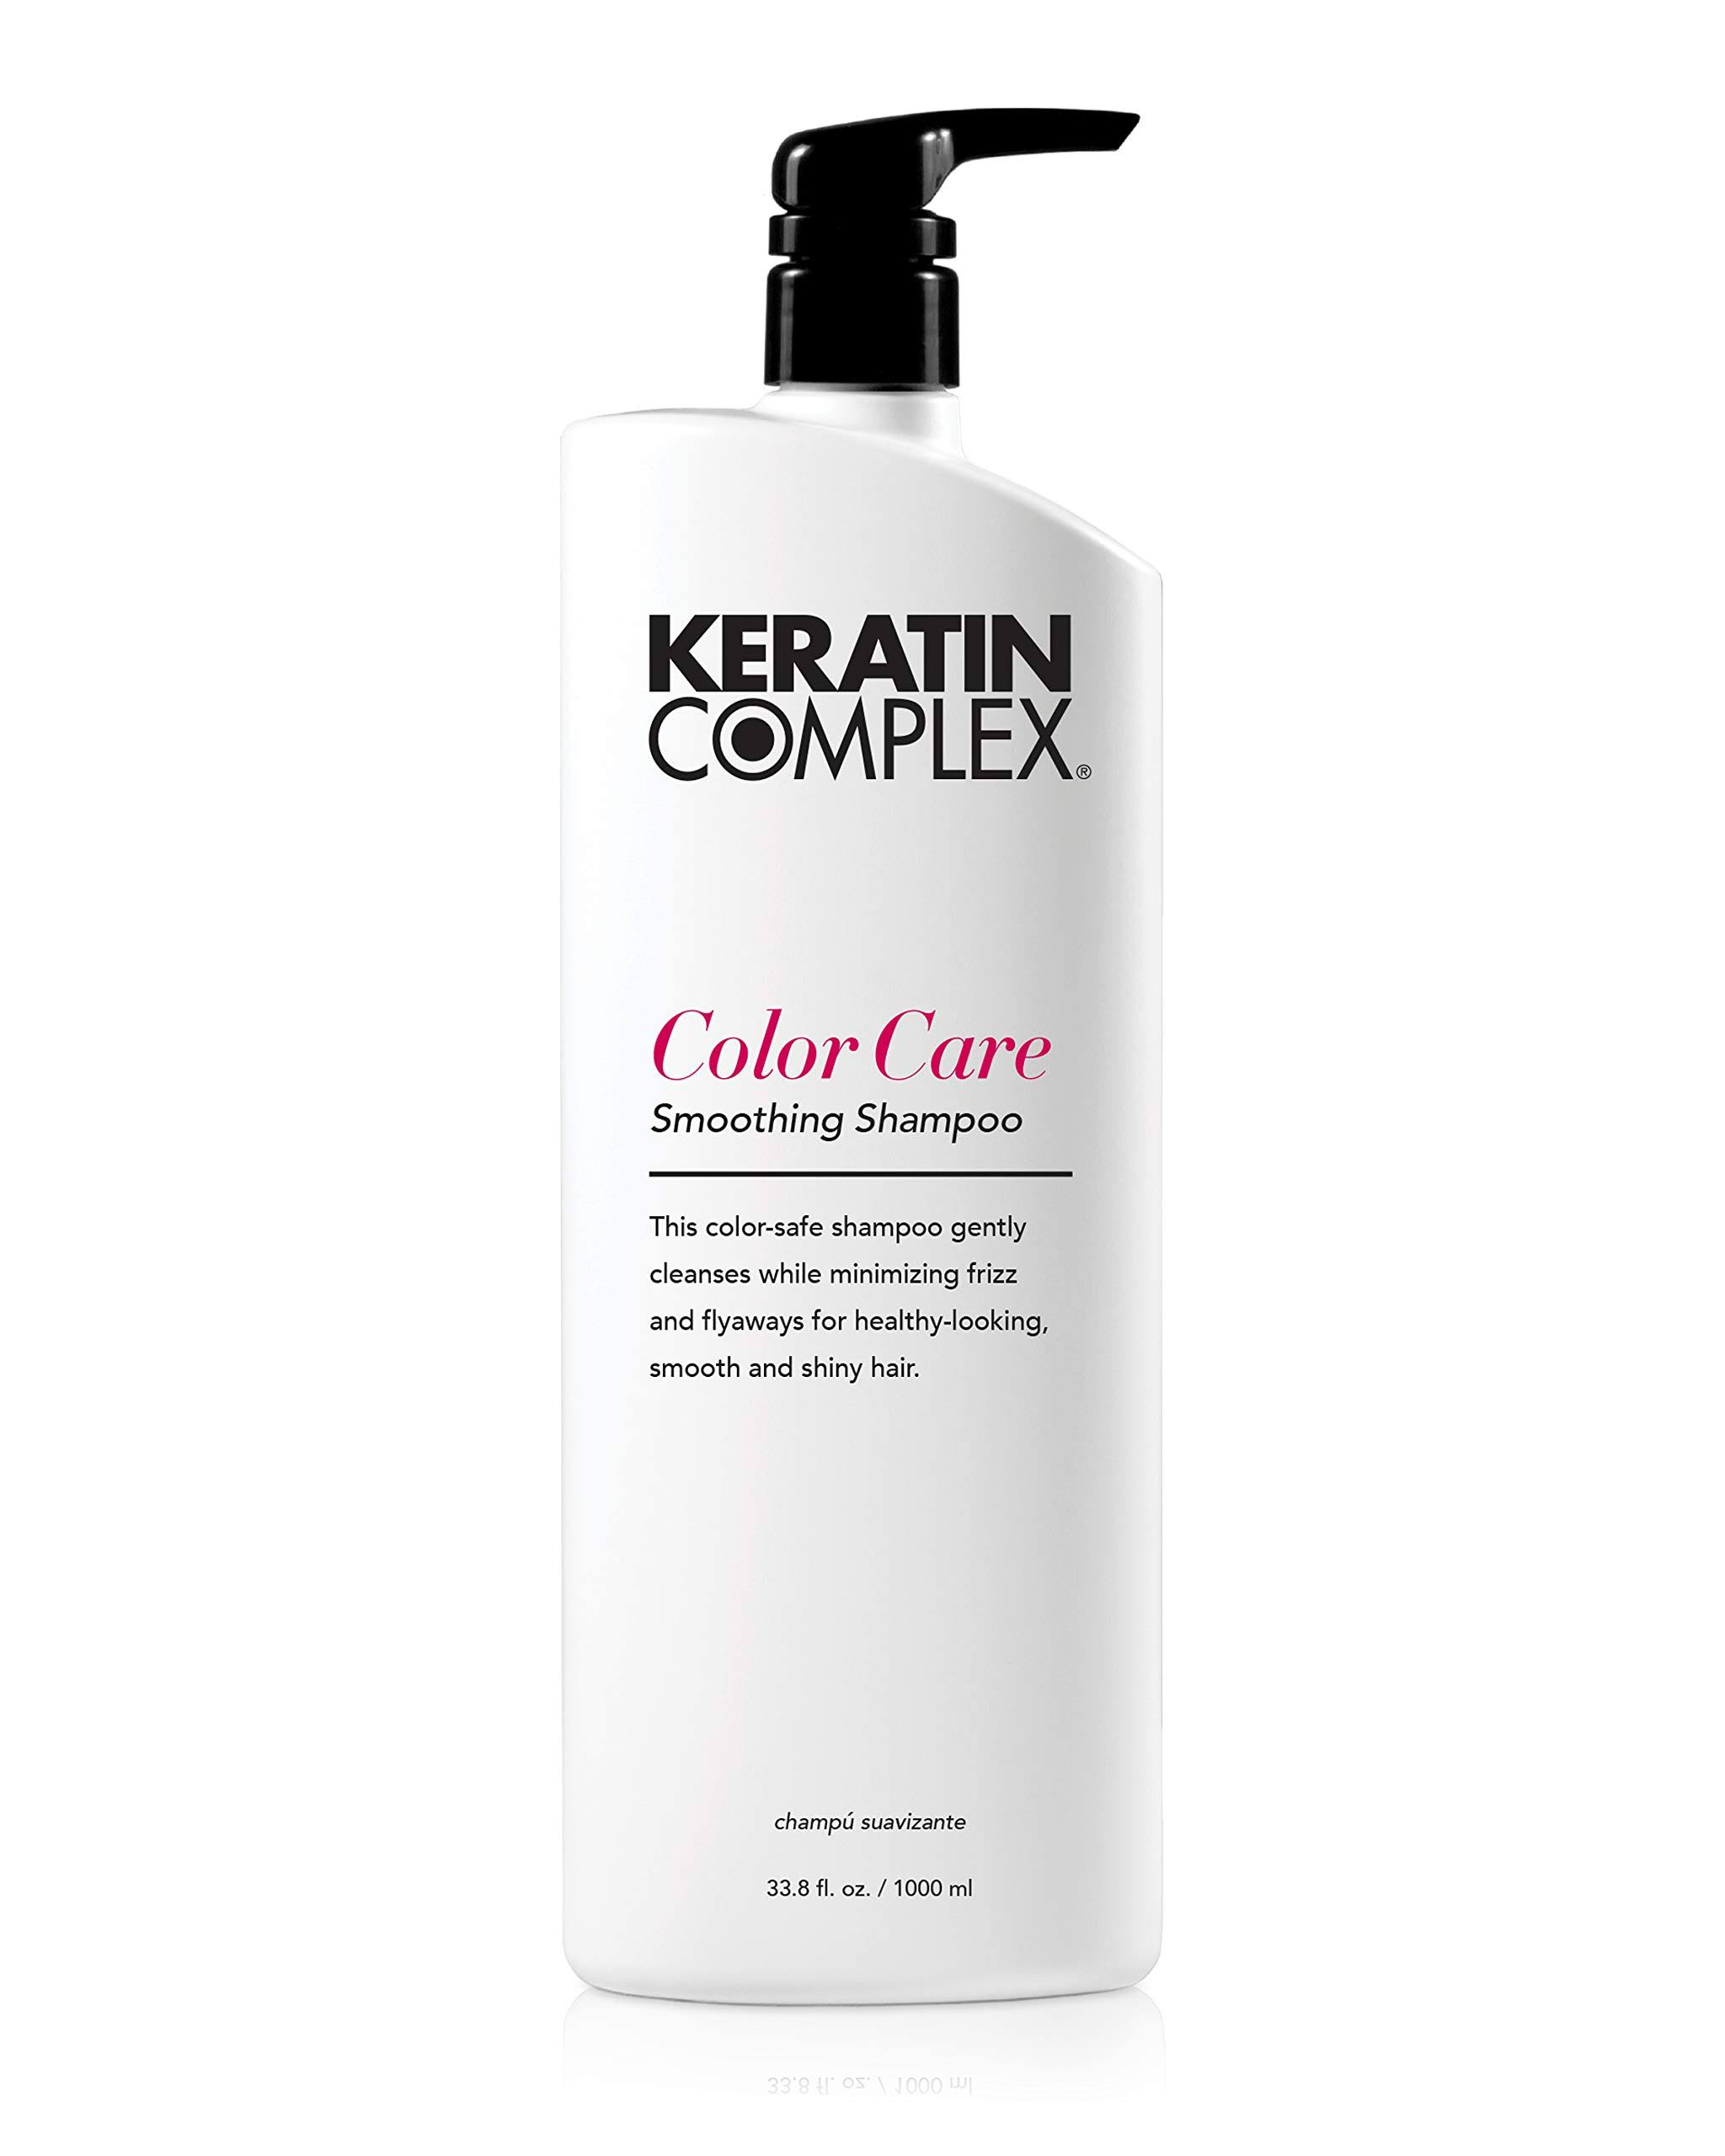 Keratin Complex Color Care Smoothing Shampoo